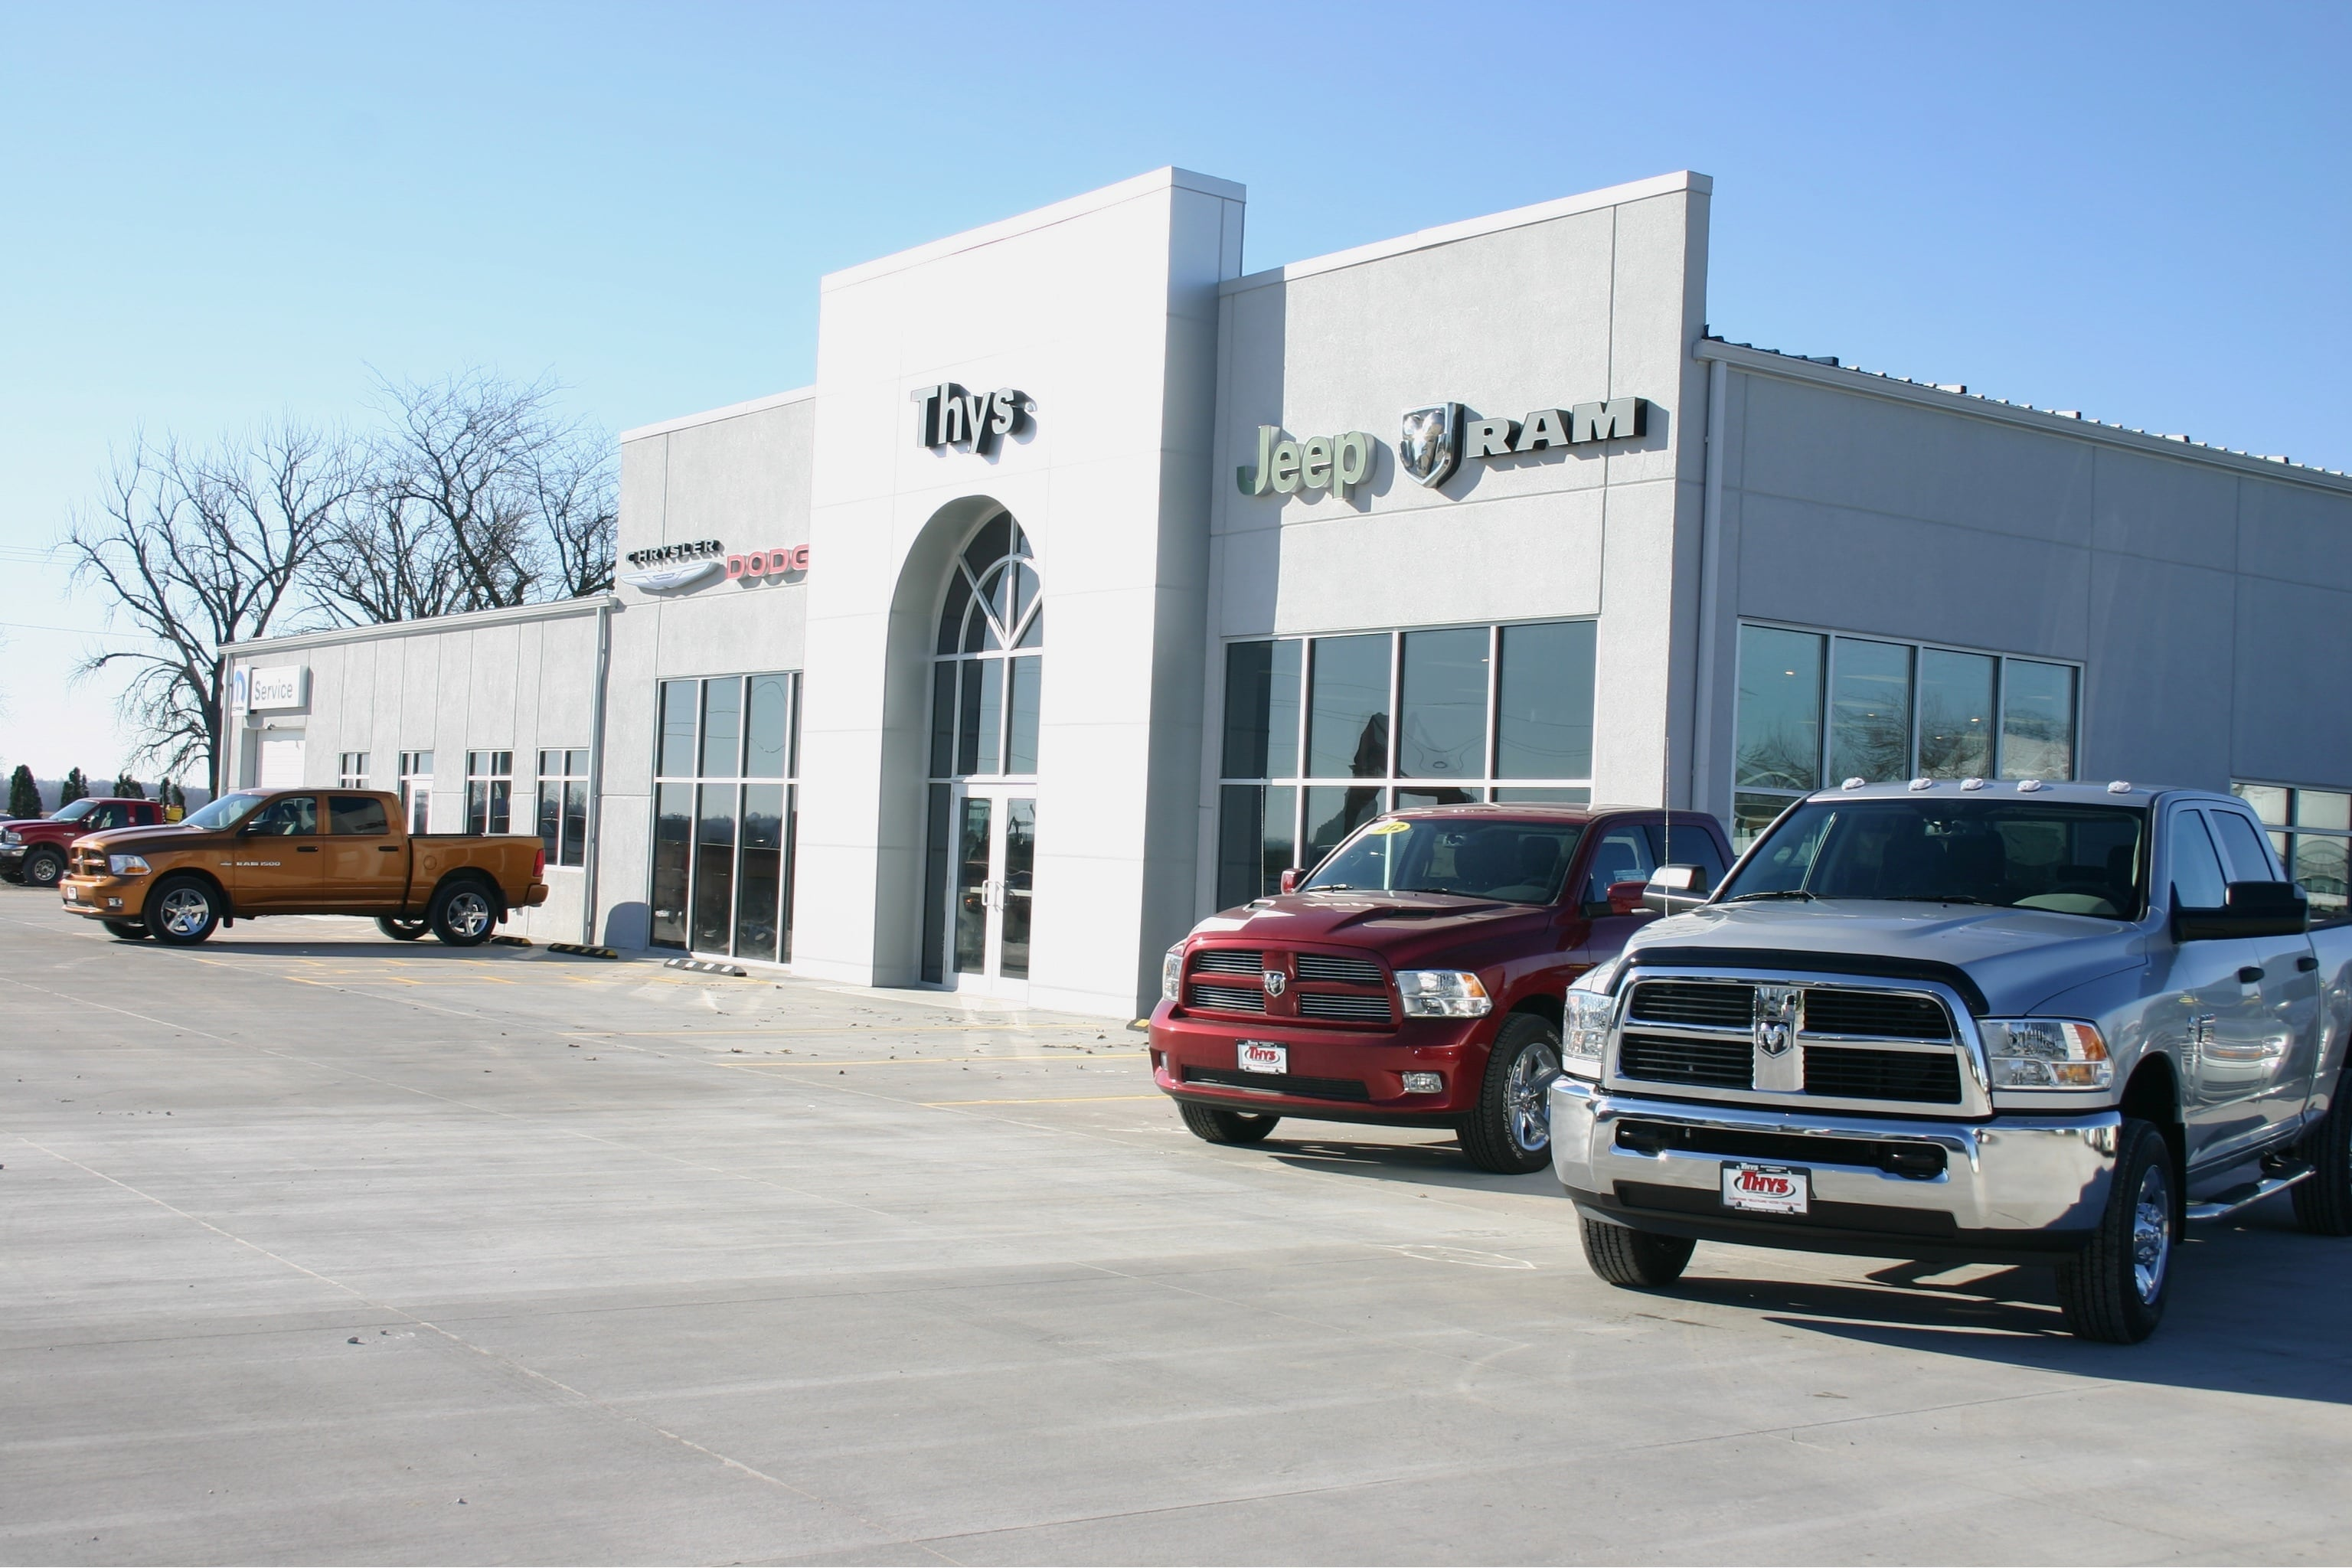 new used chrysler dealer in belle plaine ia about us. Cars Review. Best American Auto & Cars Review